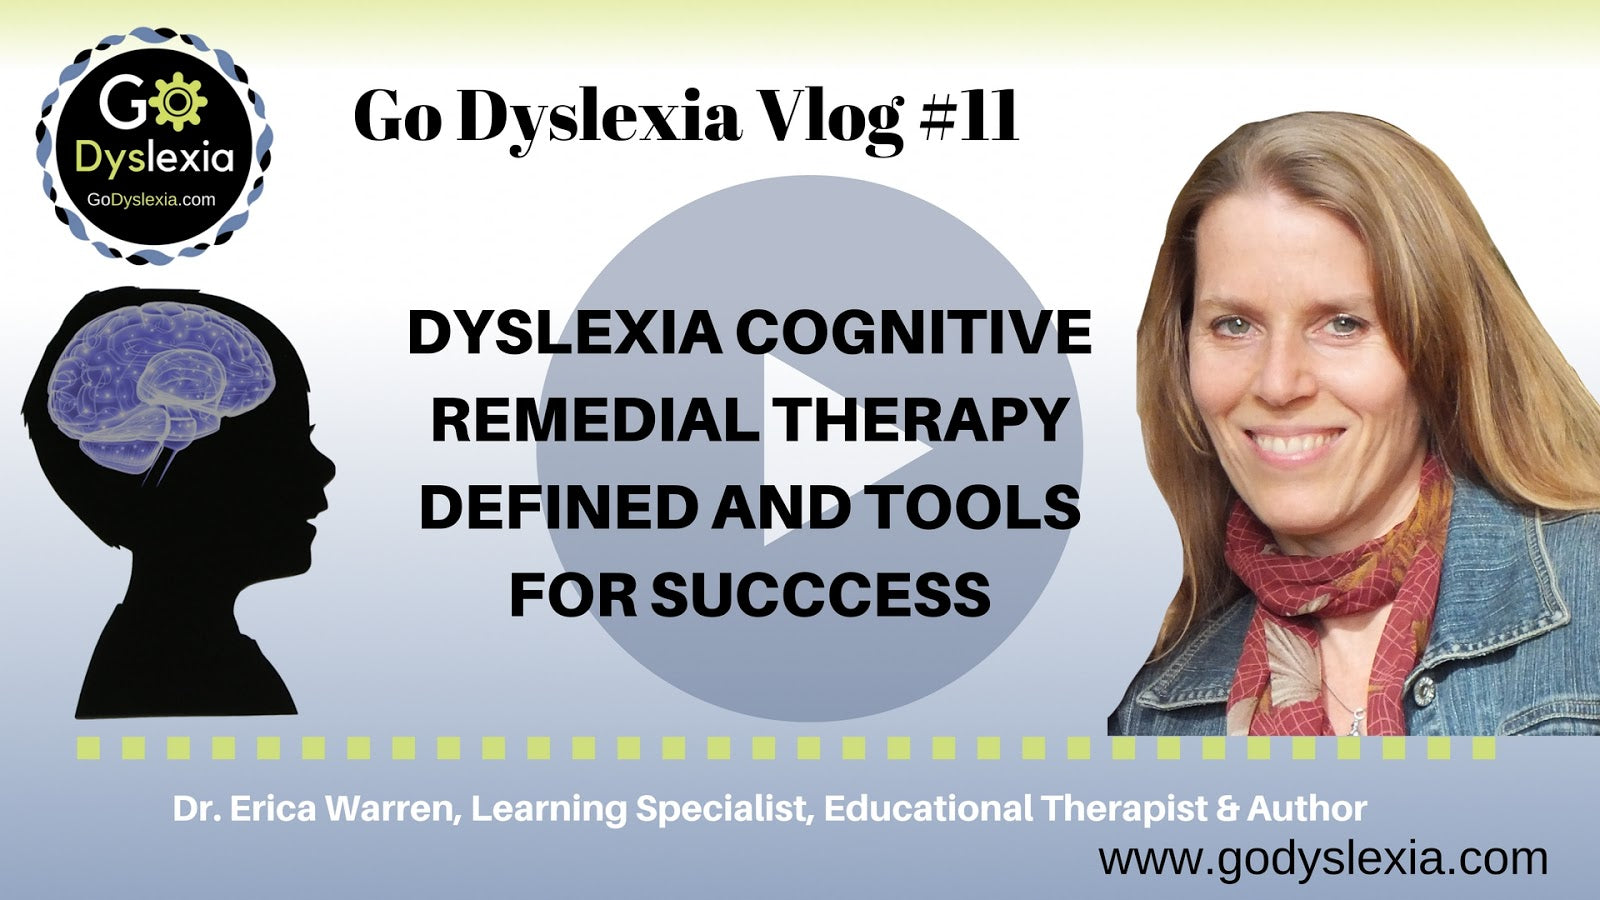 Dyslexia Cognitive Remedial Therapy Defined and Tools For Success